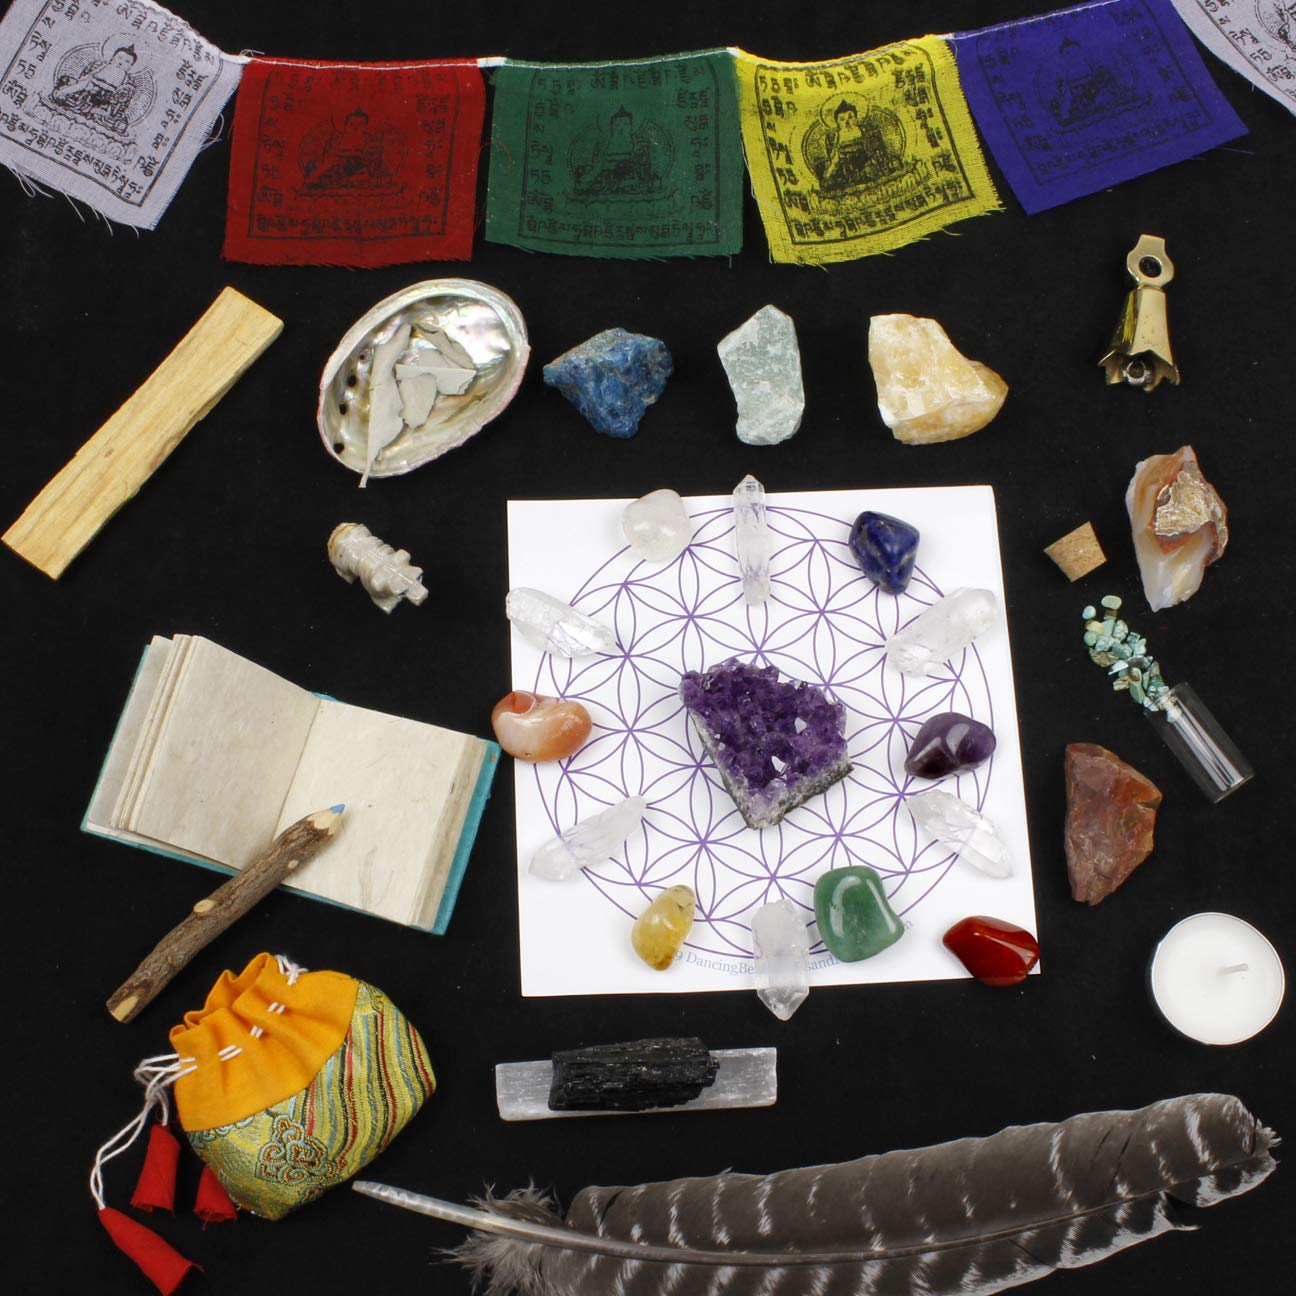 Healing Crystals Meditation Altar Kit (35 Pcs + Instruction Guides w/ Metaphysical Info) Chakra Balance Stones & Grid, Abalone Shell, Sage, Smudge Feather, Spirit Animal, Amethyst Cluster, Premium Set by Dancing Bear